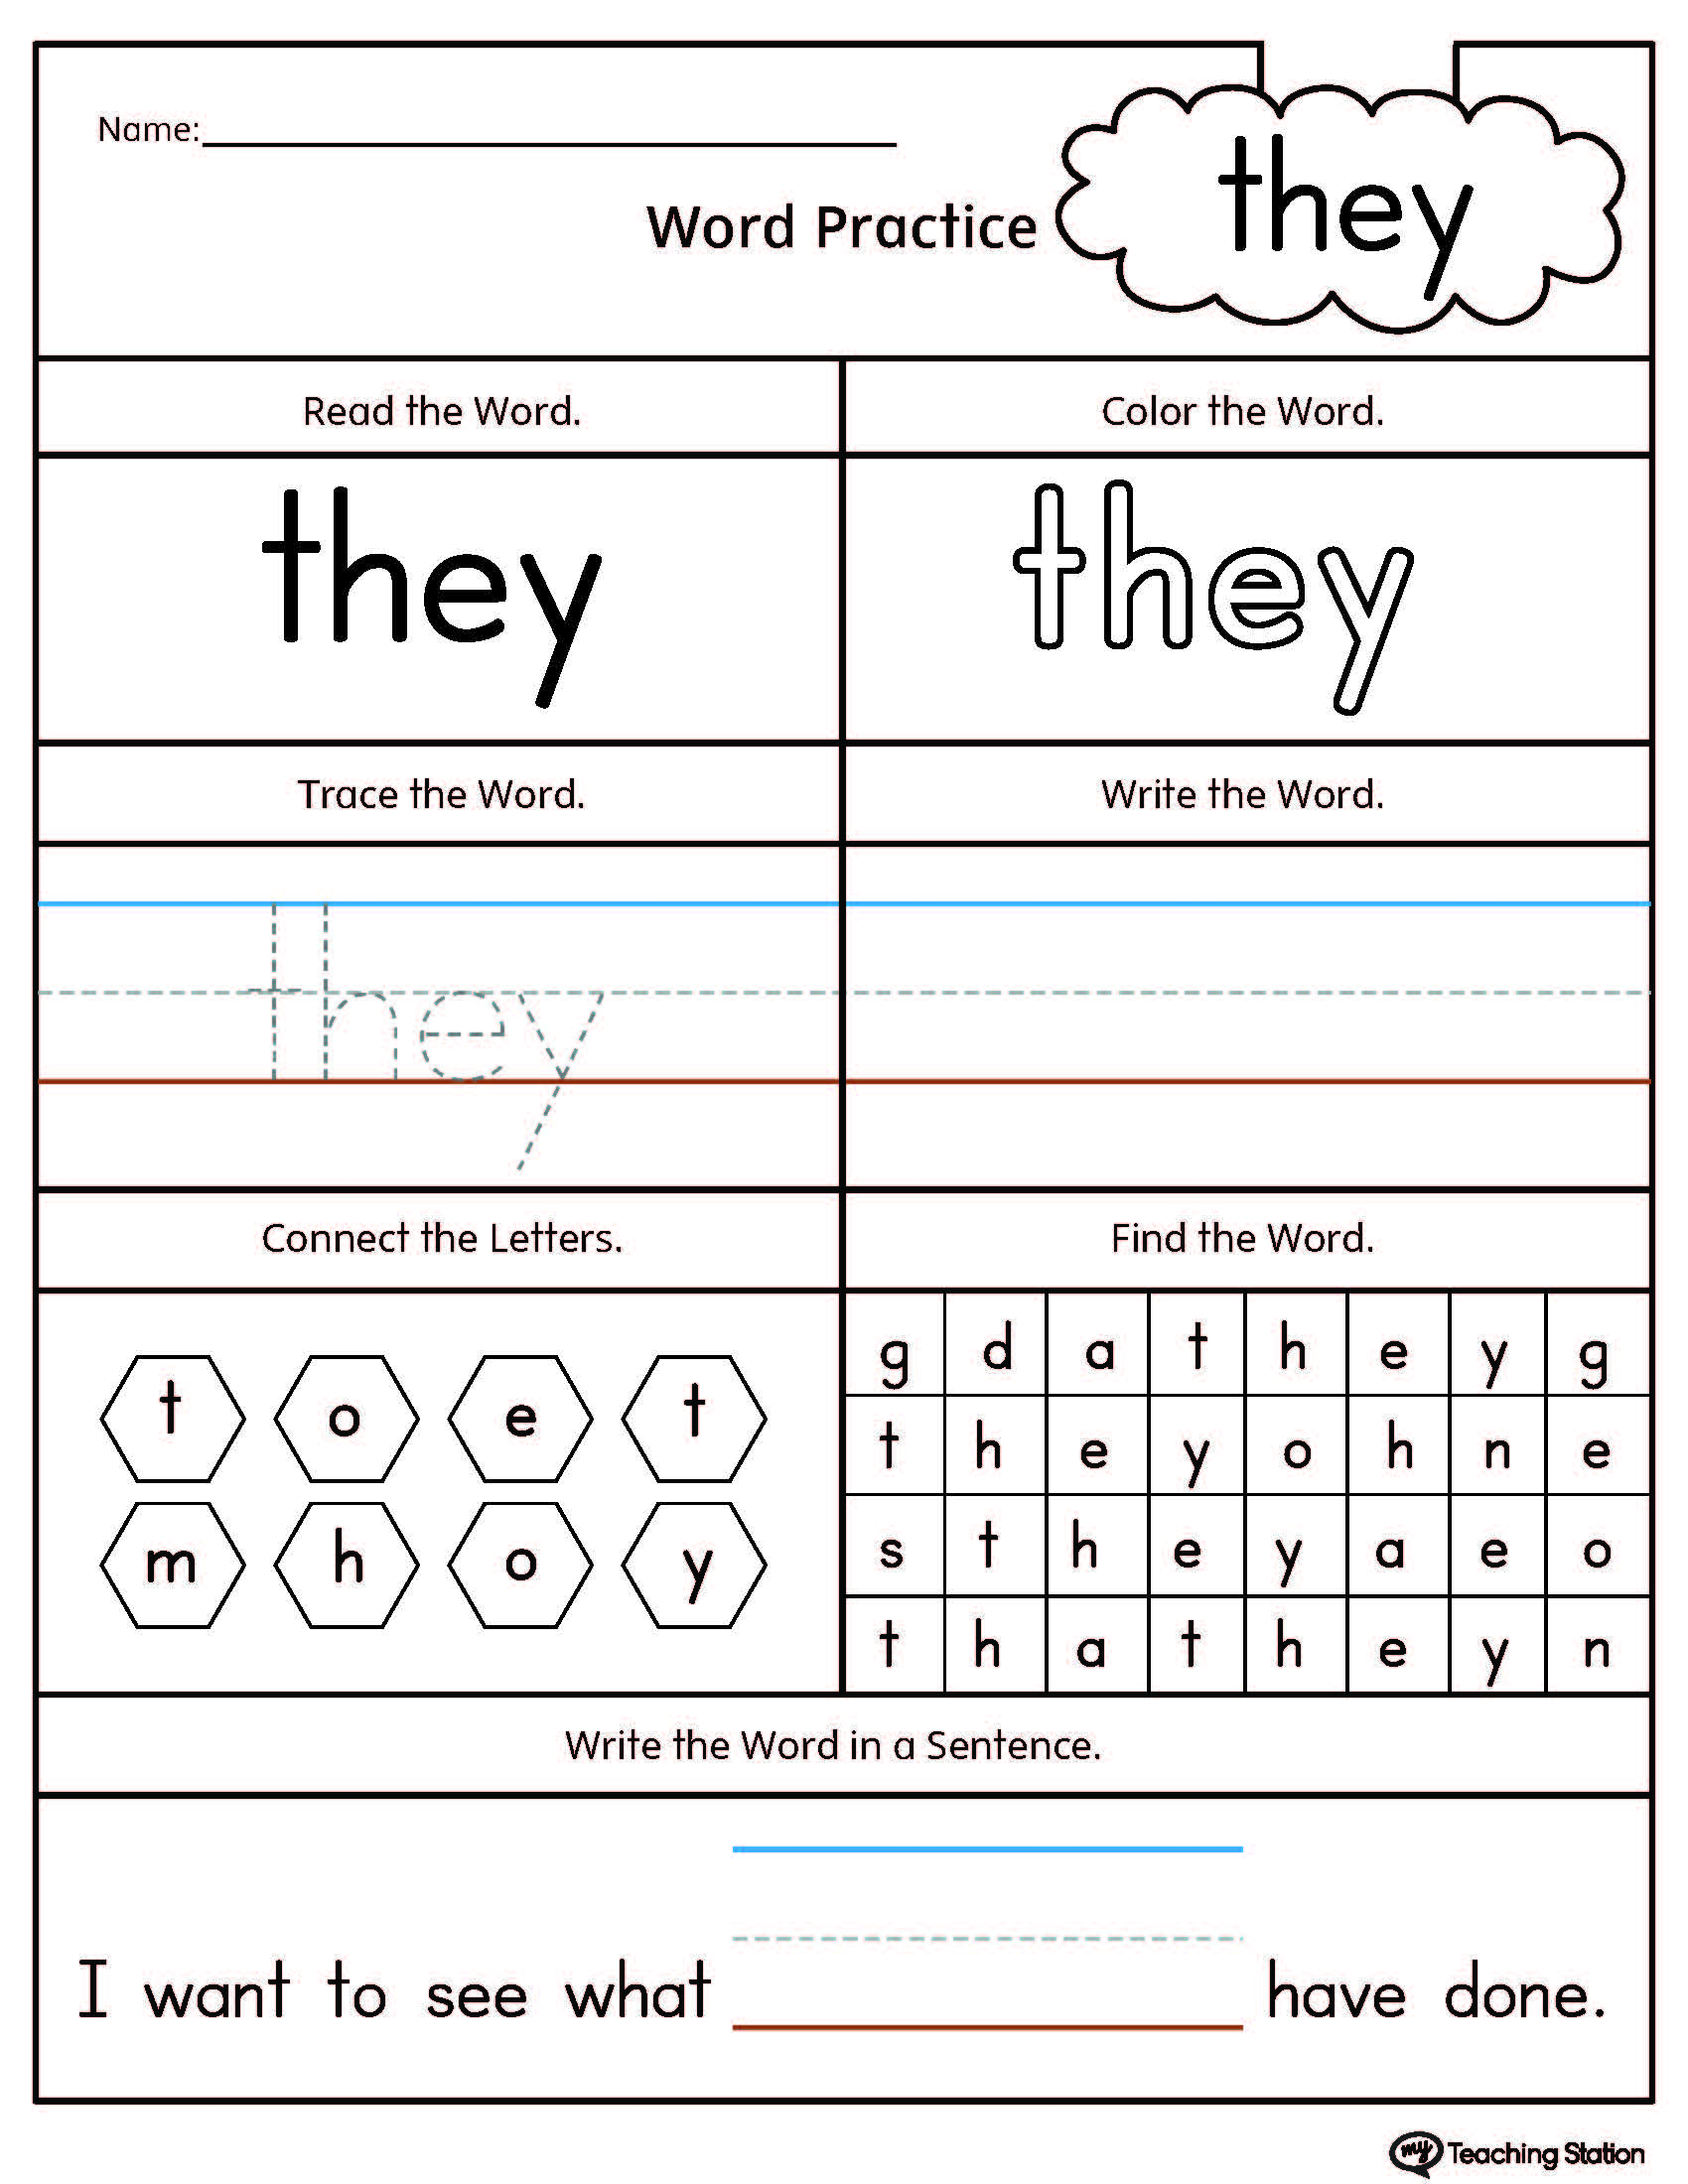 High-Frequency Word THEY Printable Worksheet | MyTeachingStation.com